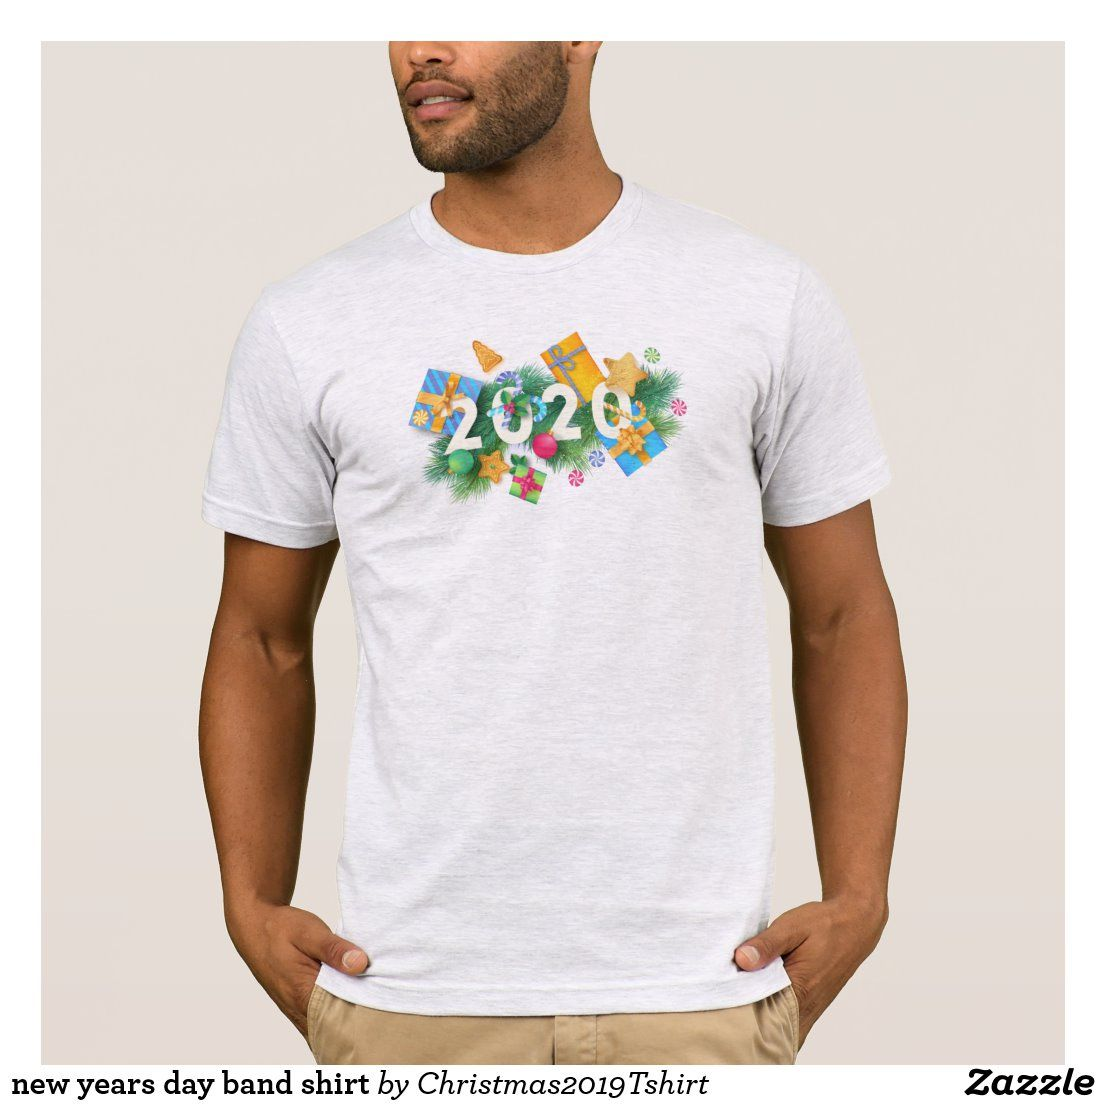 New Years Day Band Shirt Zazzle Com In 2020 New Years Day Band Band Shirts Shirts